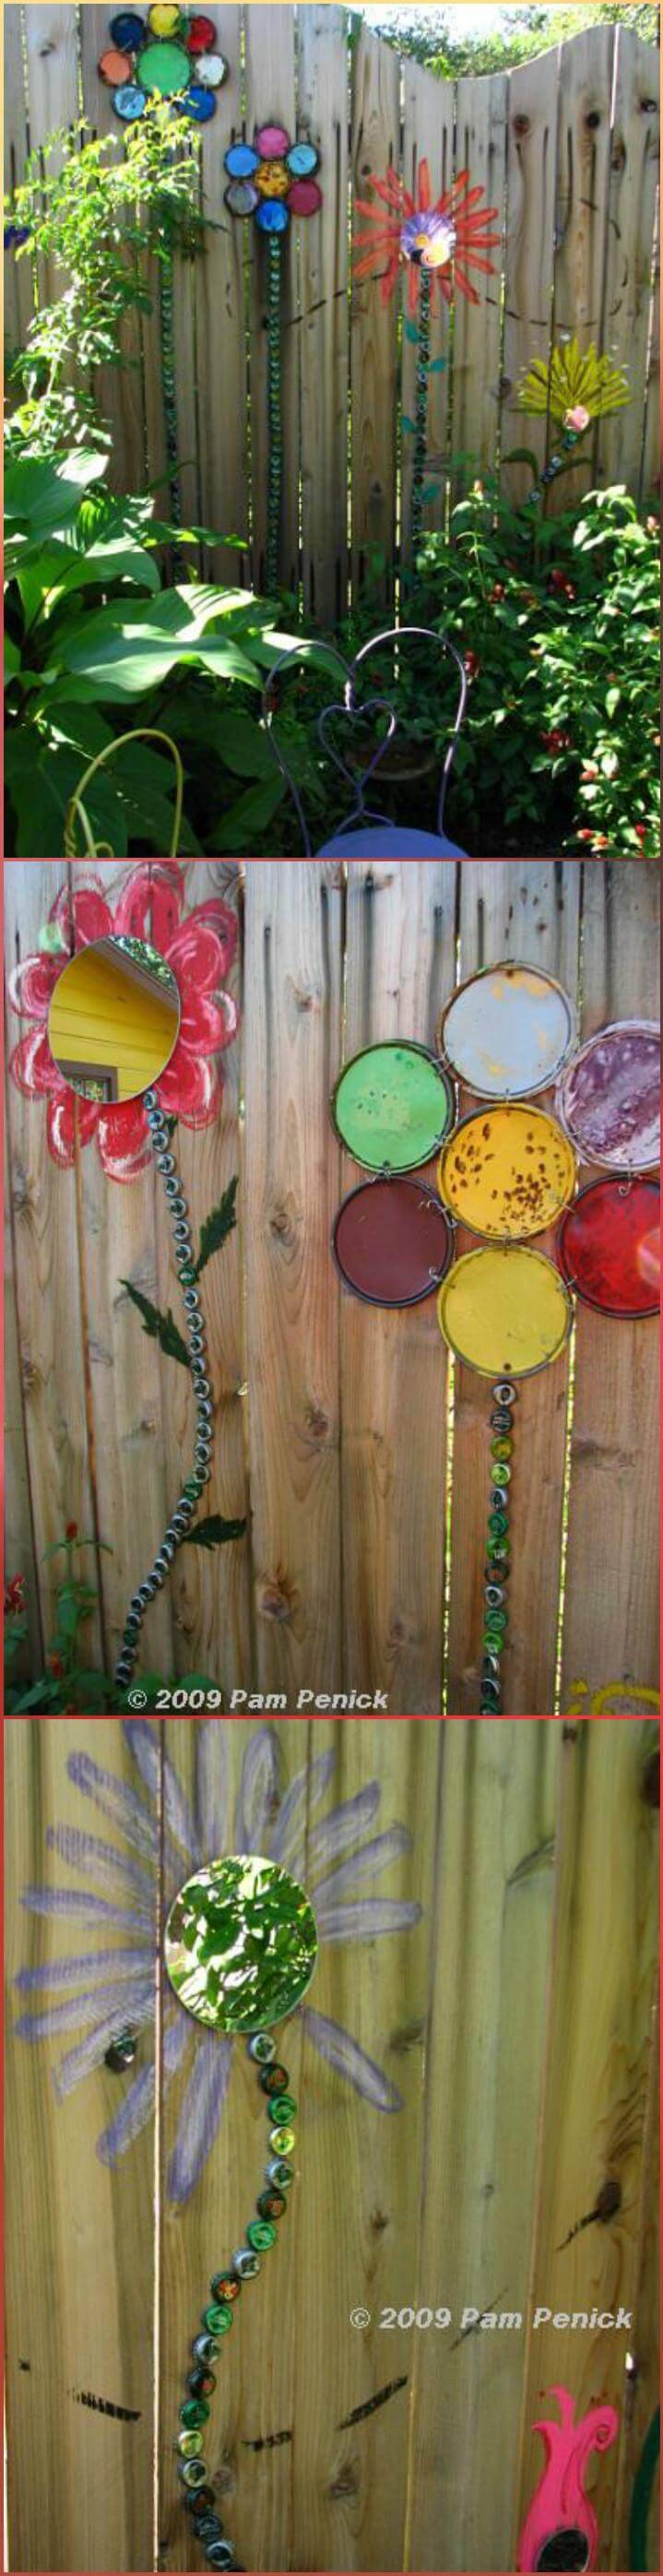 repurposed old paint can lids into fence flowers